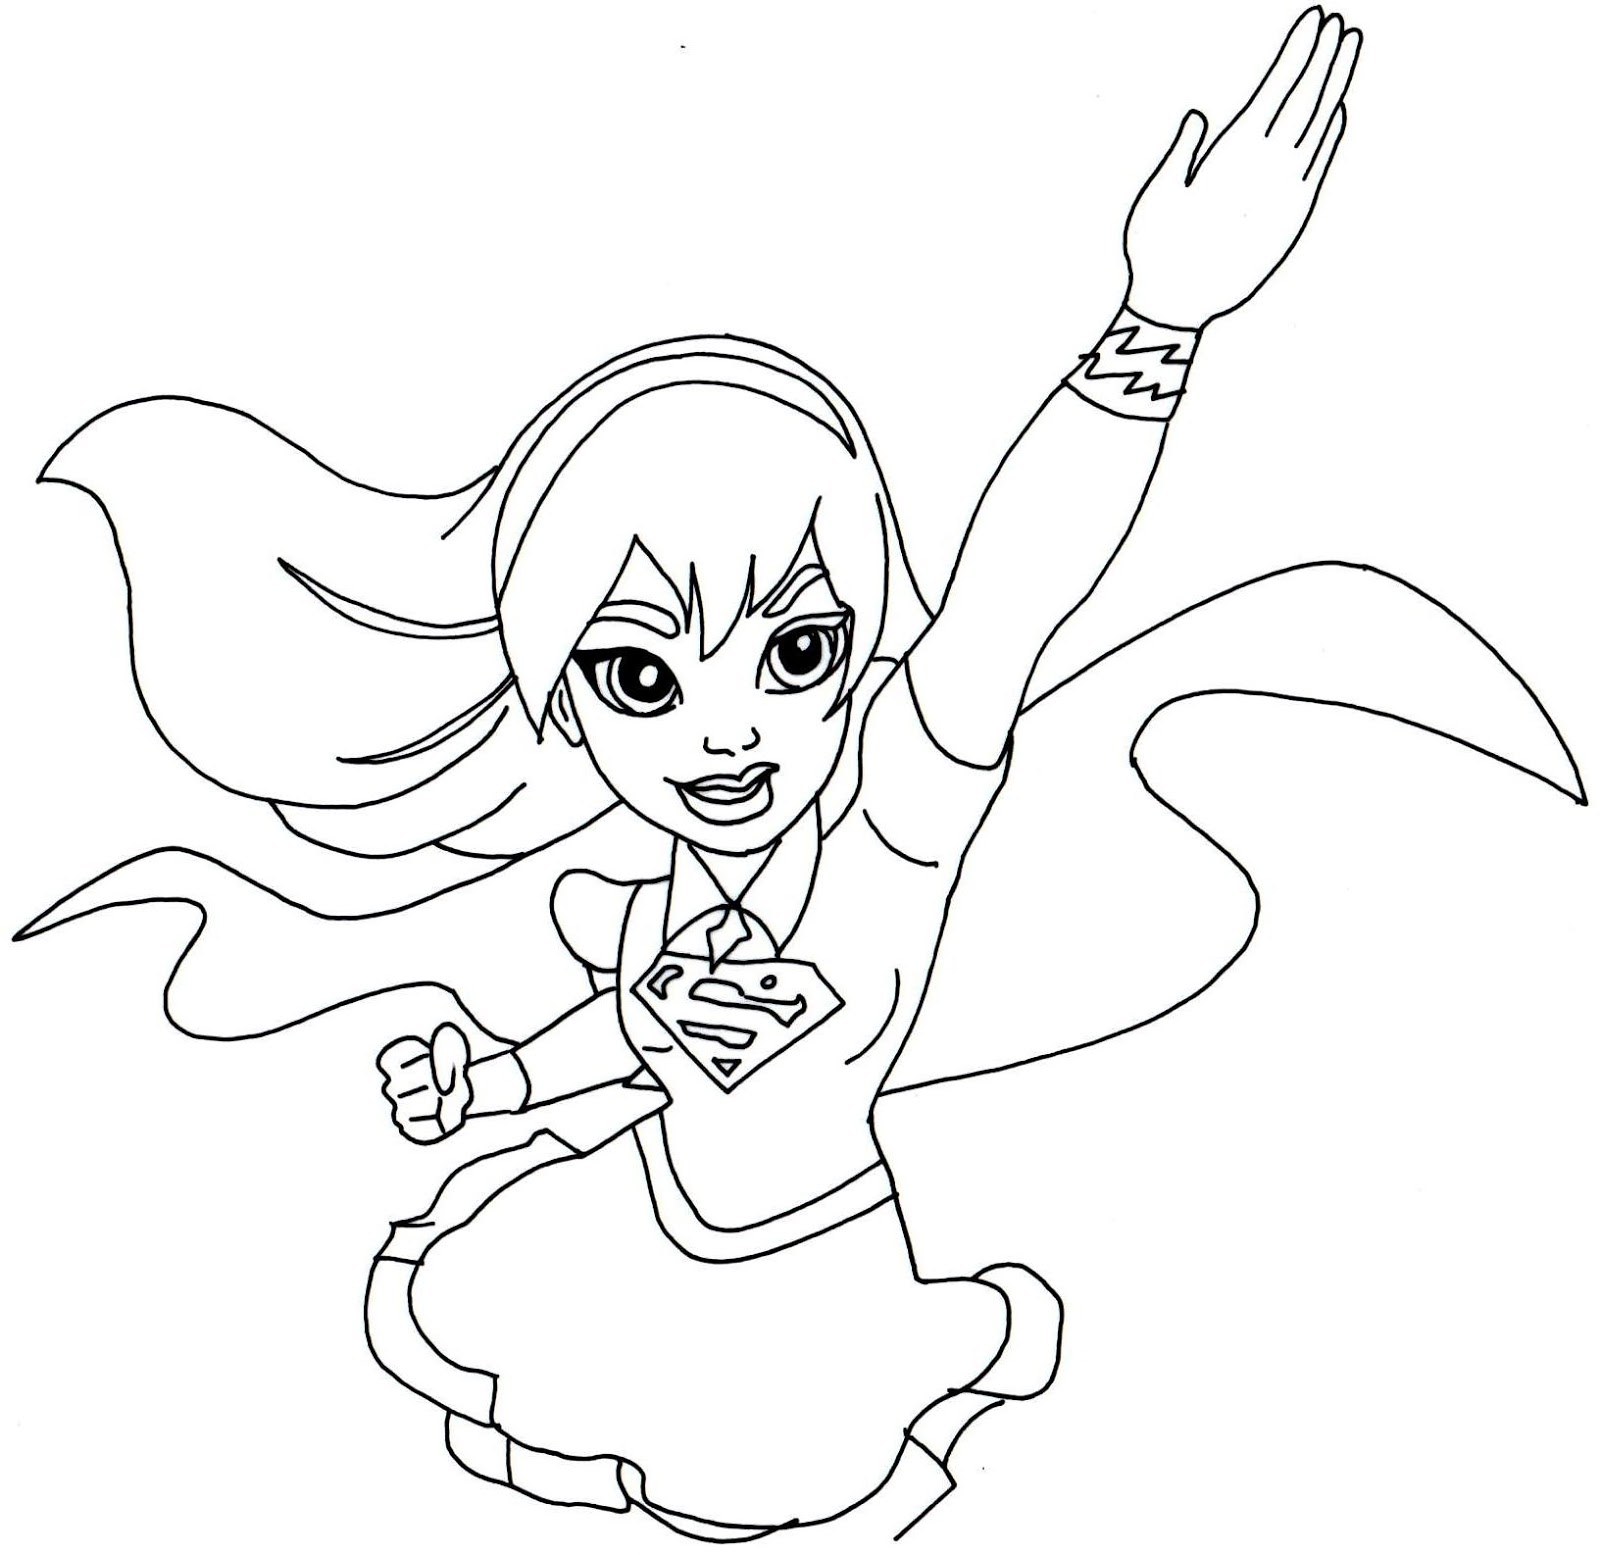 Supergirl Coloring Pages Whataboutmimi Com Coloring Home In Color Pages